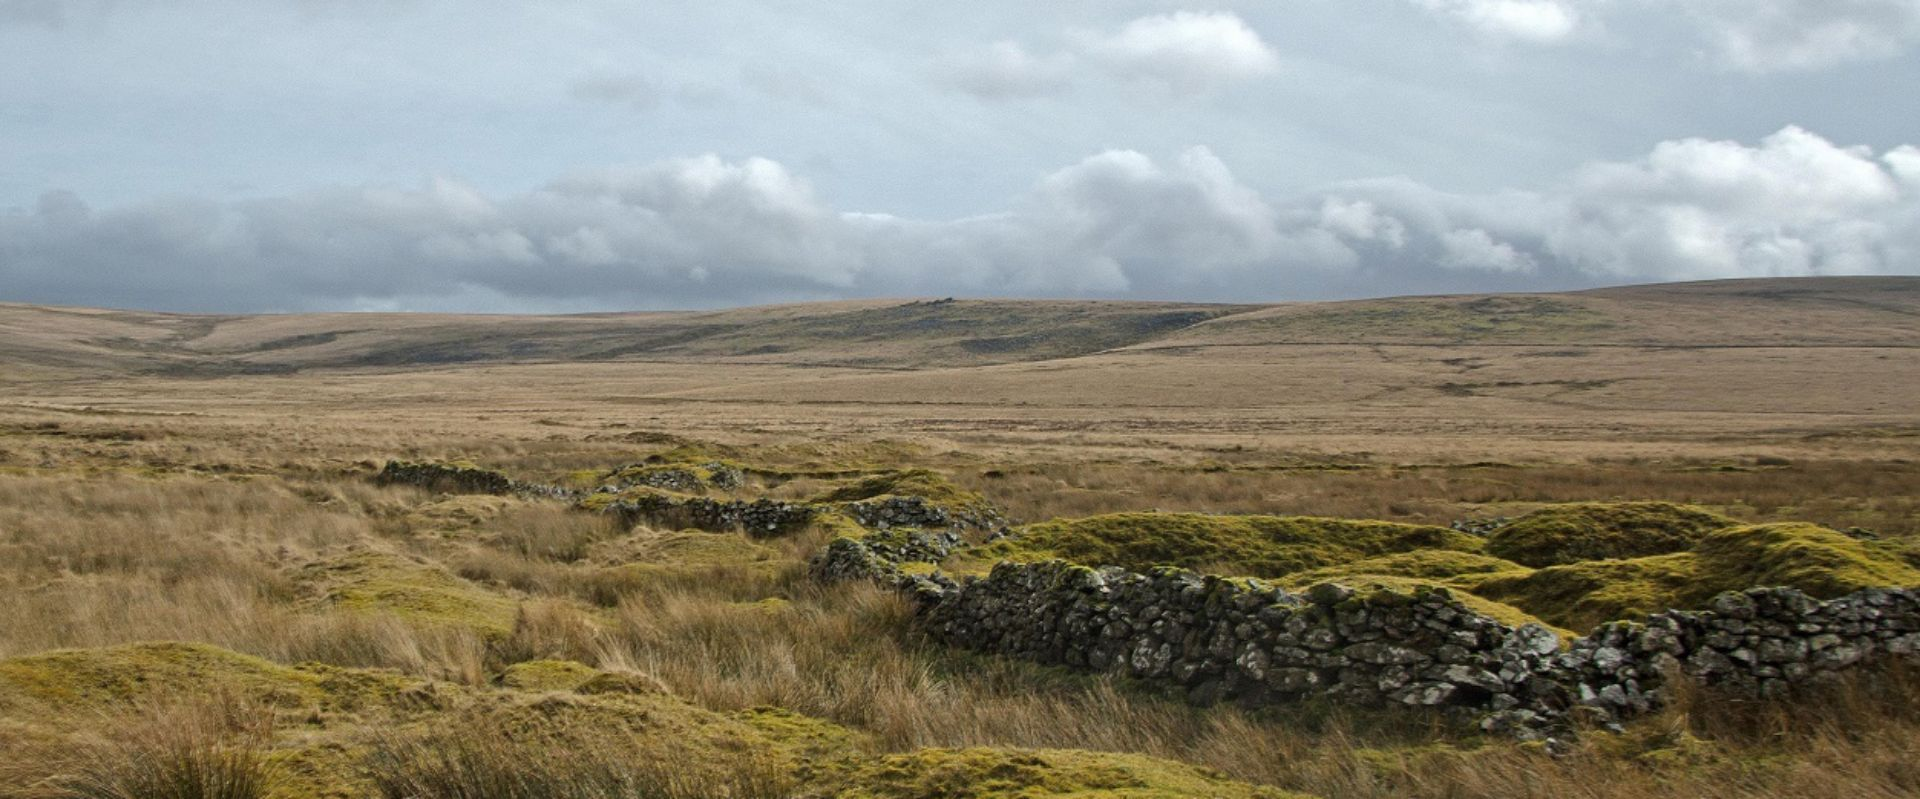 Fox Tor Mire, or Grimpen Mire in the great story!